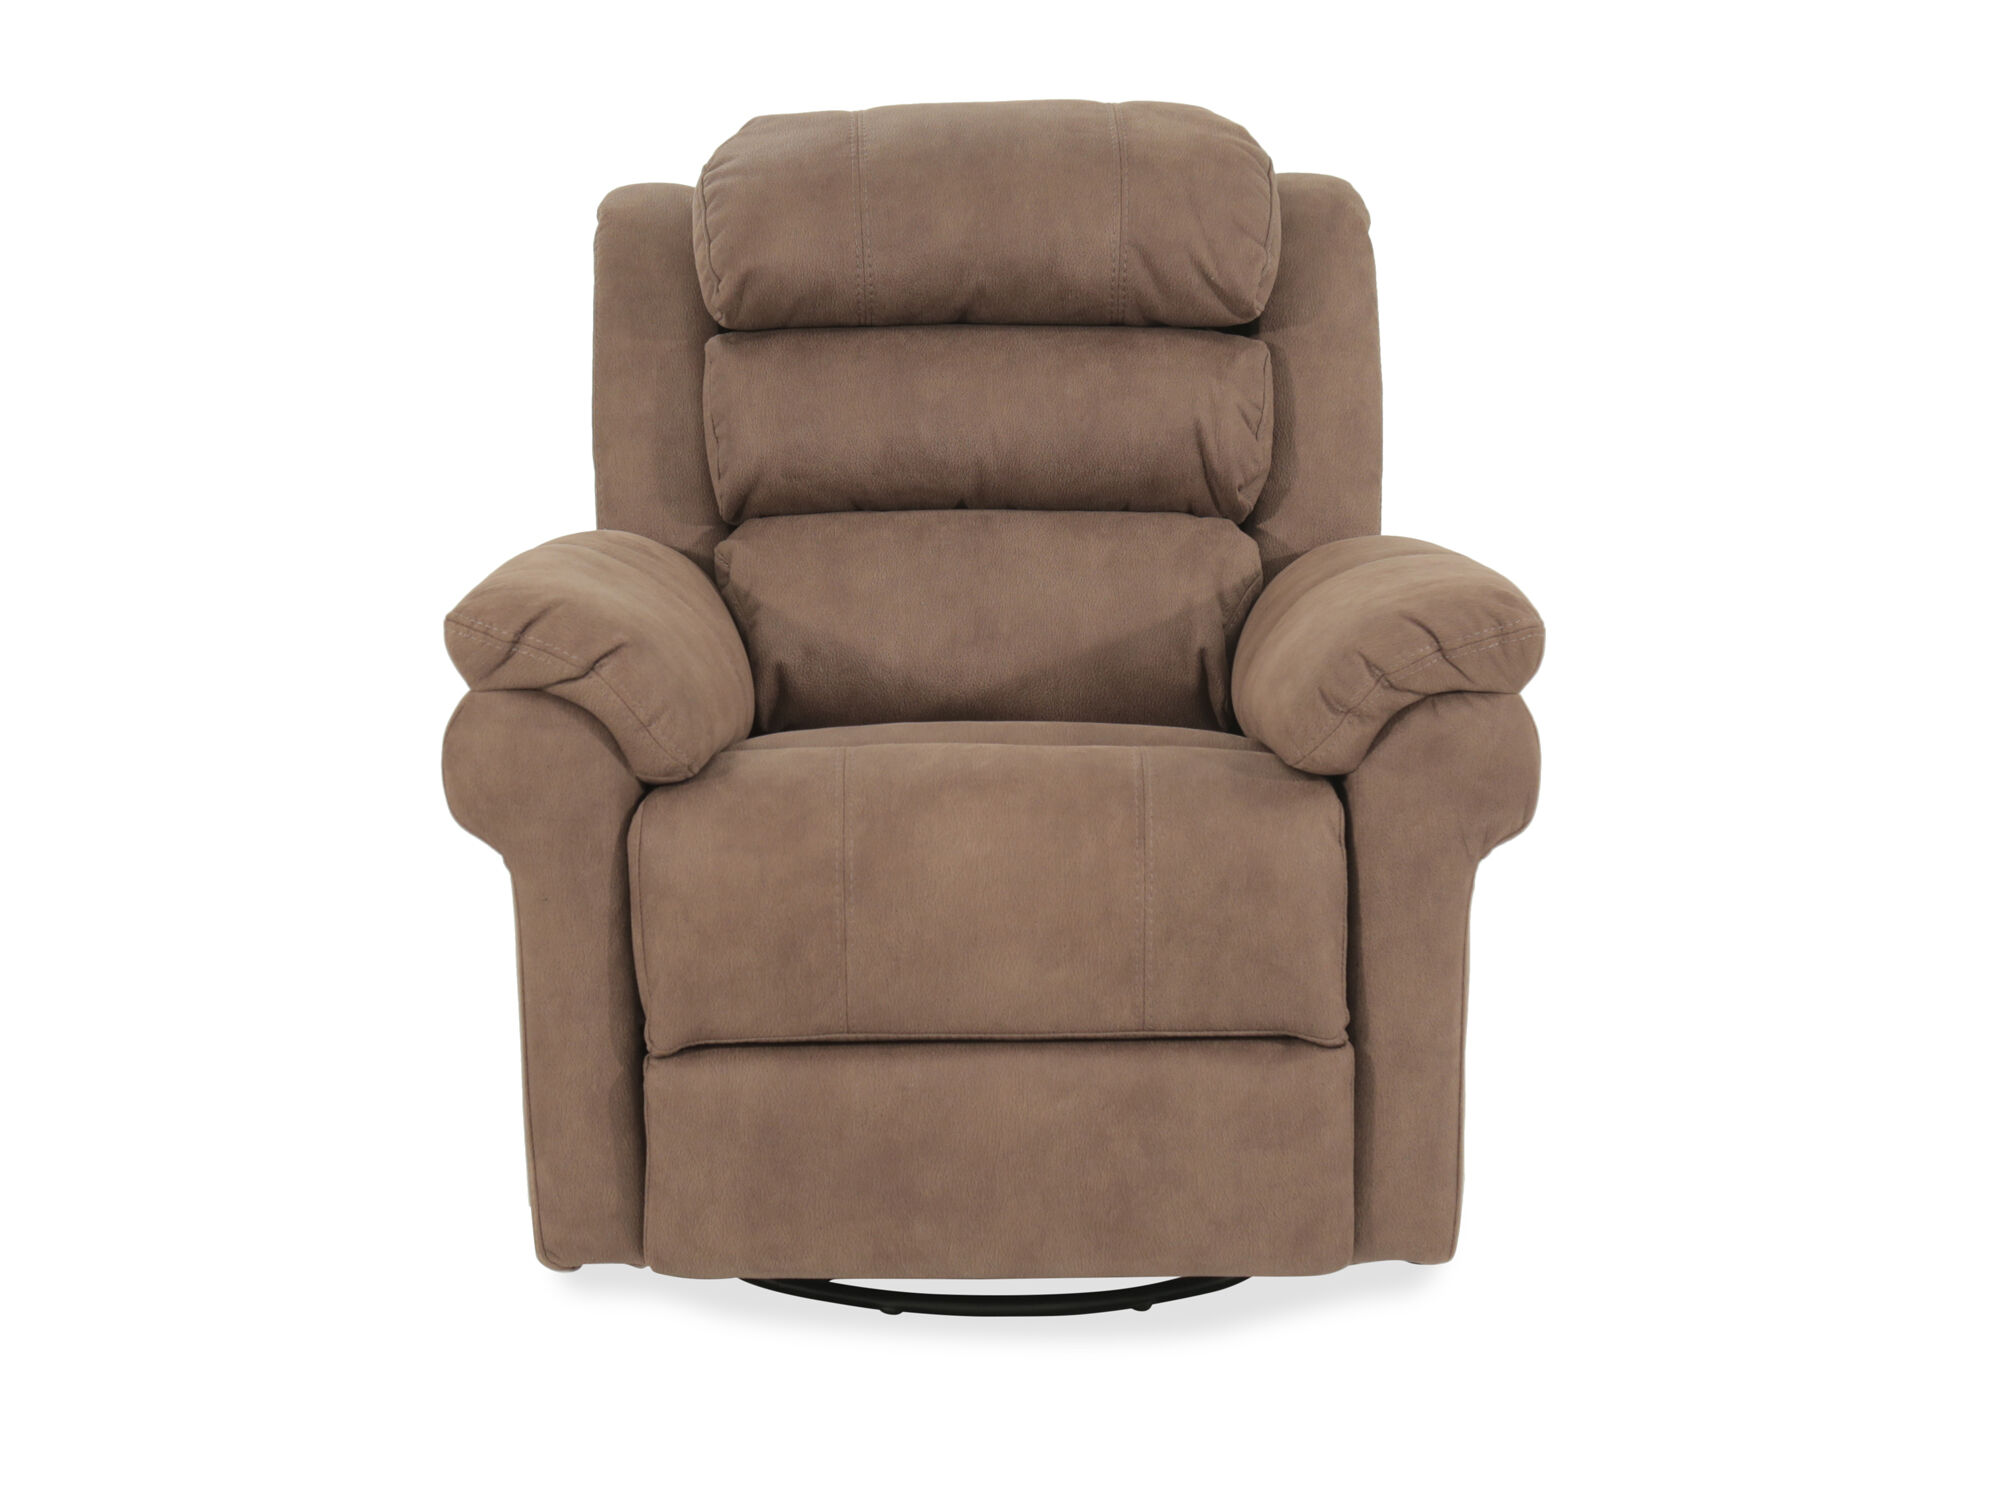 Casual 38 Quot Power Swivel Glider Recliner In Beige Mathis